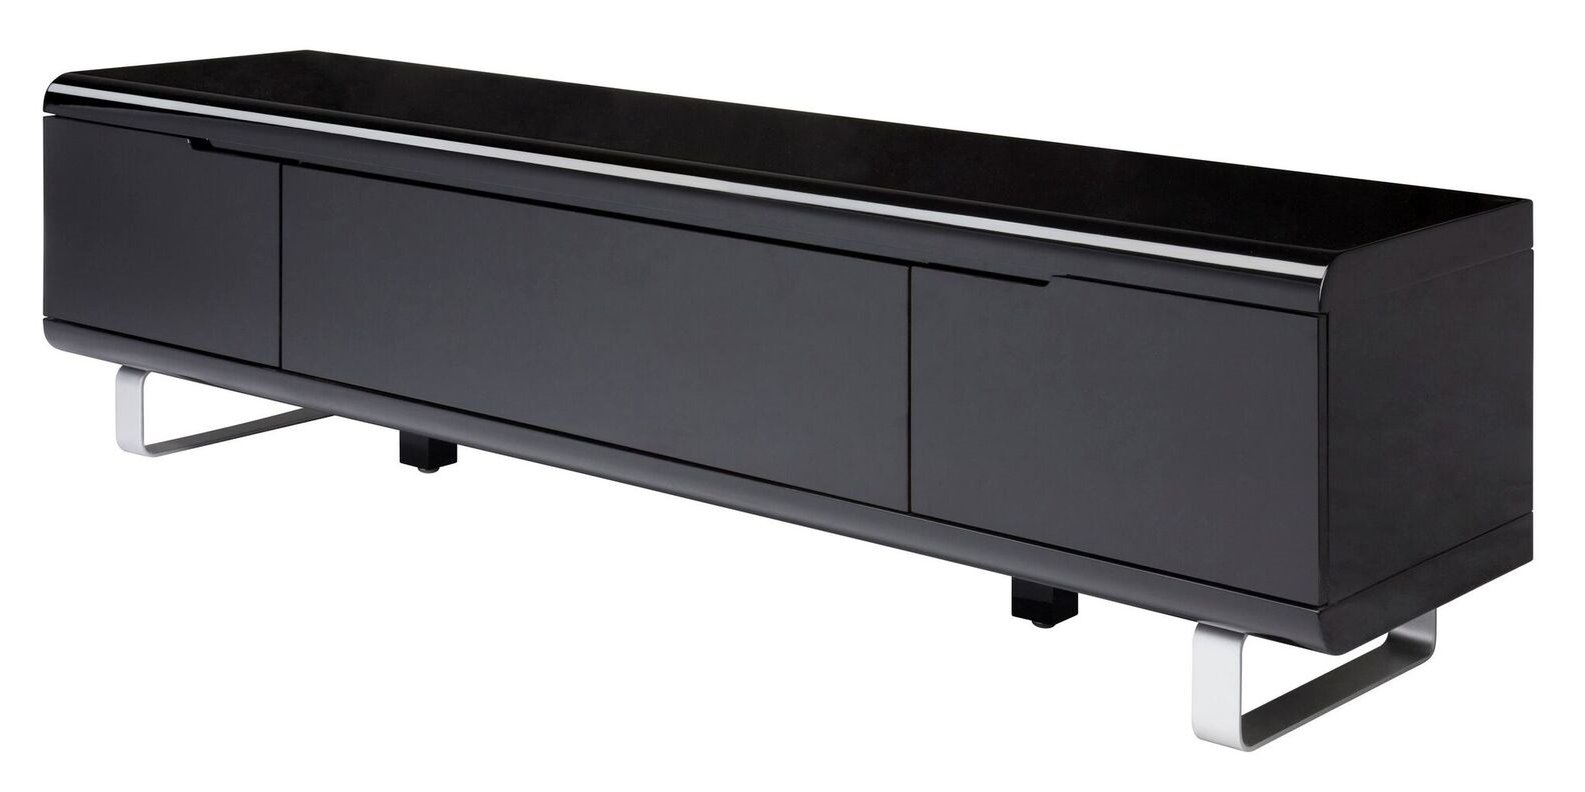 Hifi Kommode Tv Lowboard Spacy Hochglanz Schwarz Kommode Sideboard